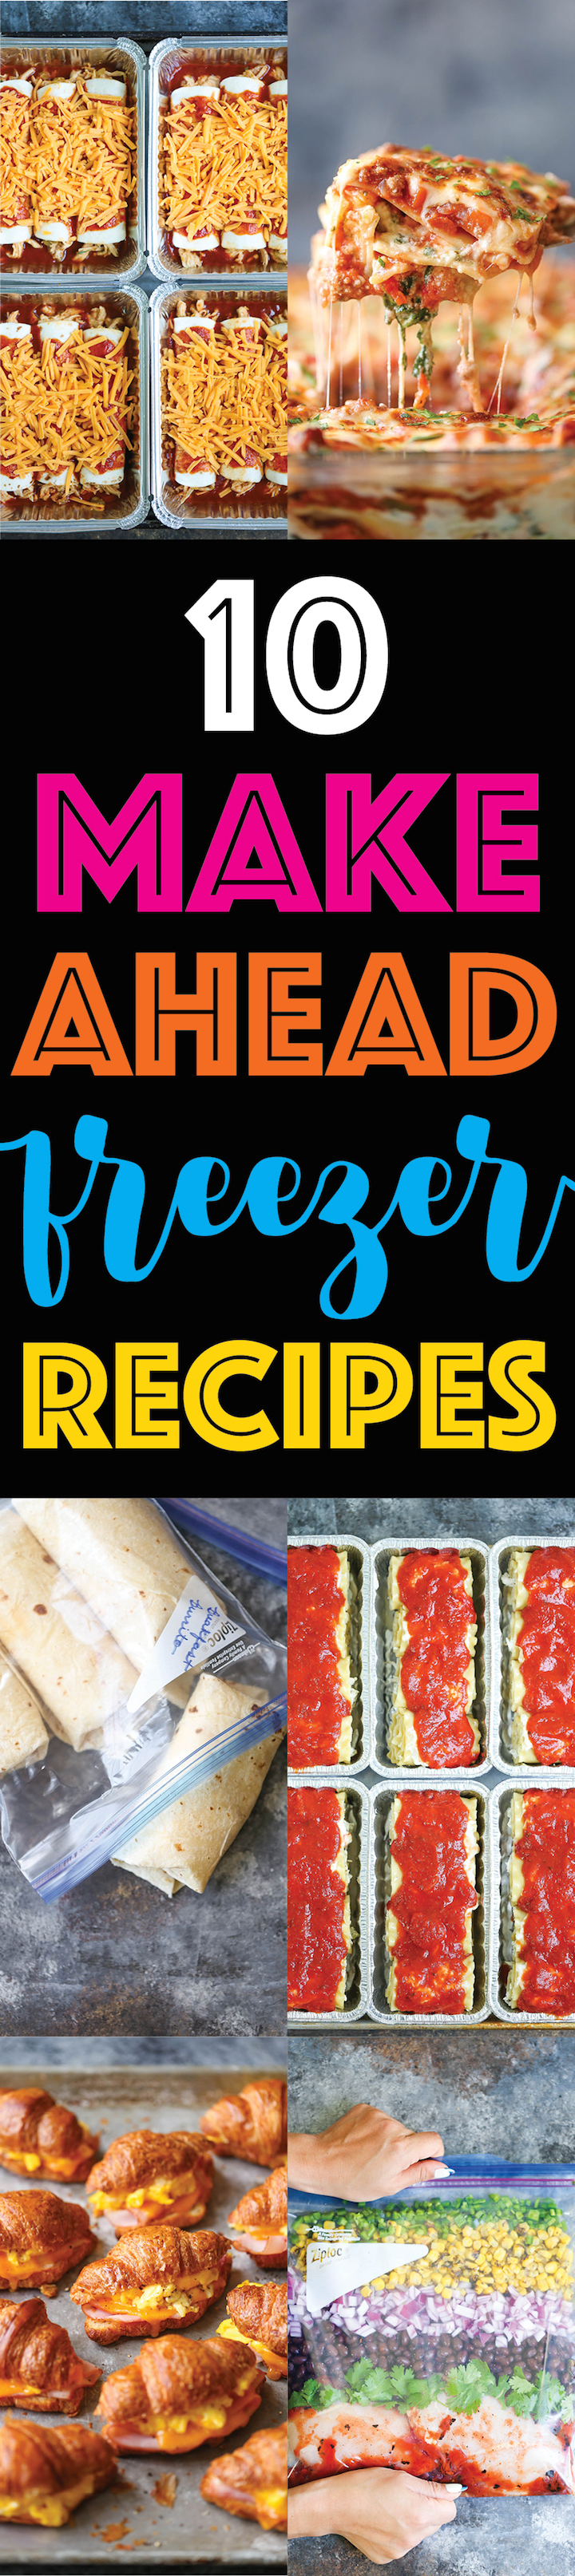 10 Make Ahead Freezer Recipes - Freezer friendly recipes for those busy weeknights! Simply prep, freeze and cook for the best home cooked meal. SO EASY!!!